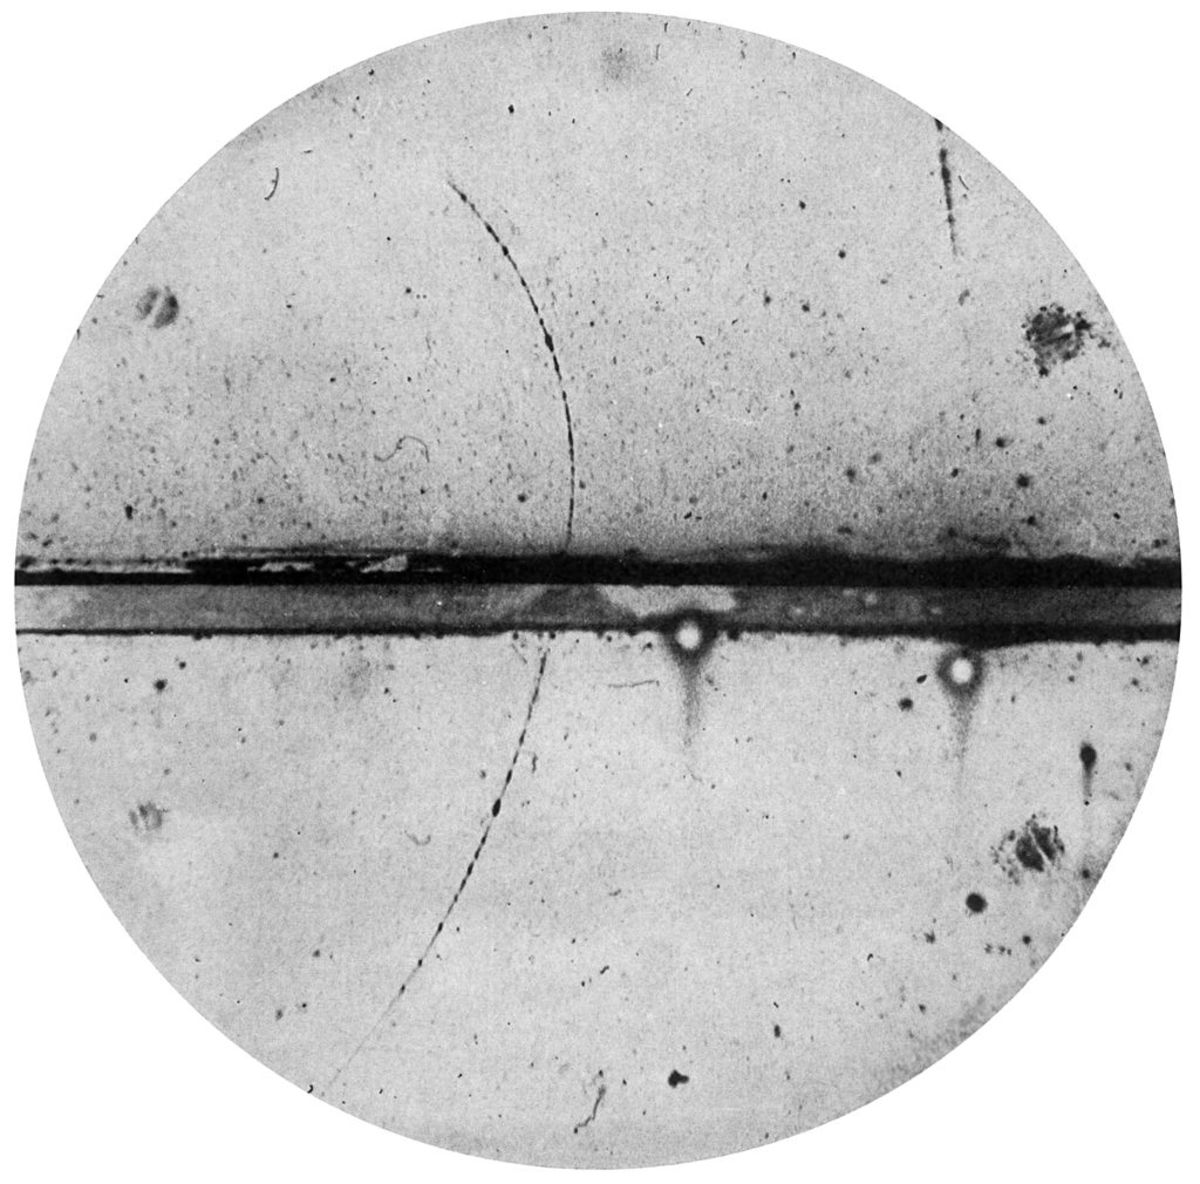 Cloud chamber view of a positron (a form of antimatter).